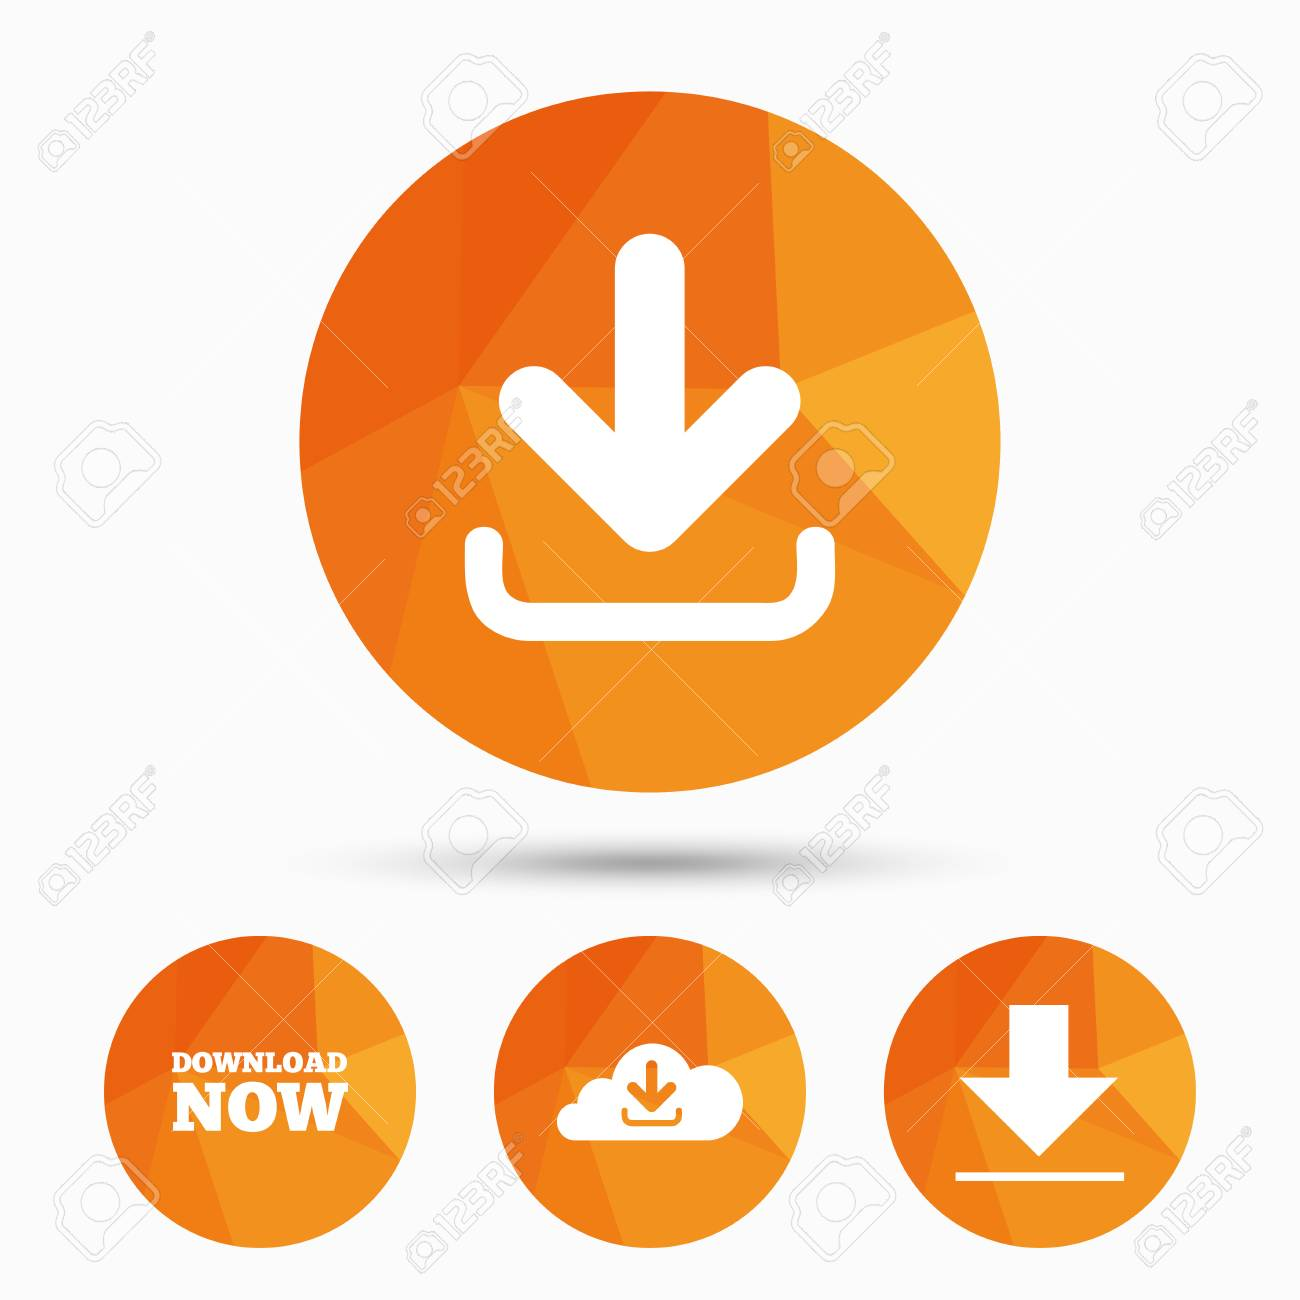 Download now icon upload from cloud symbols receive data from upload from cloud symbols receive data from a remote storage signs biocorpaavc Gallery